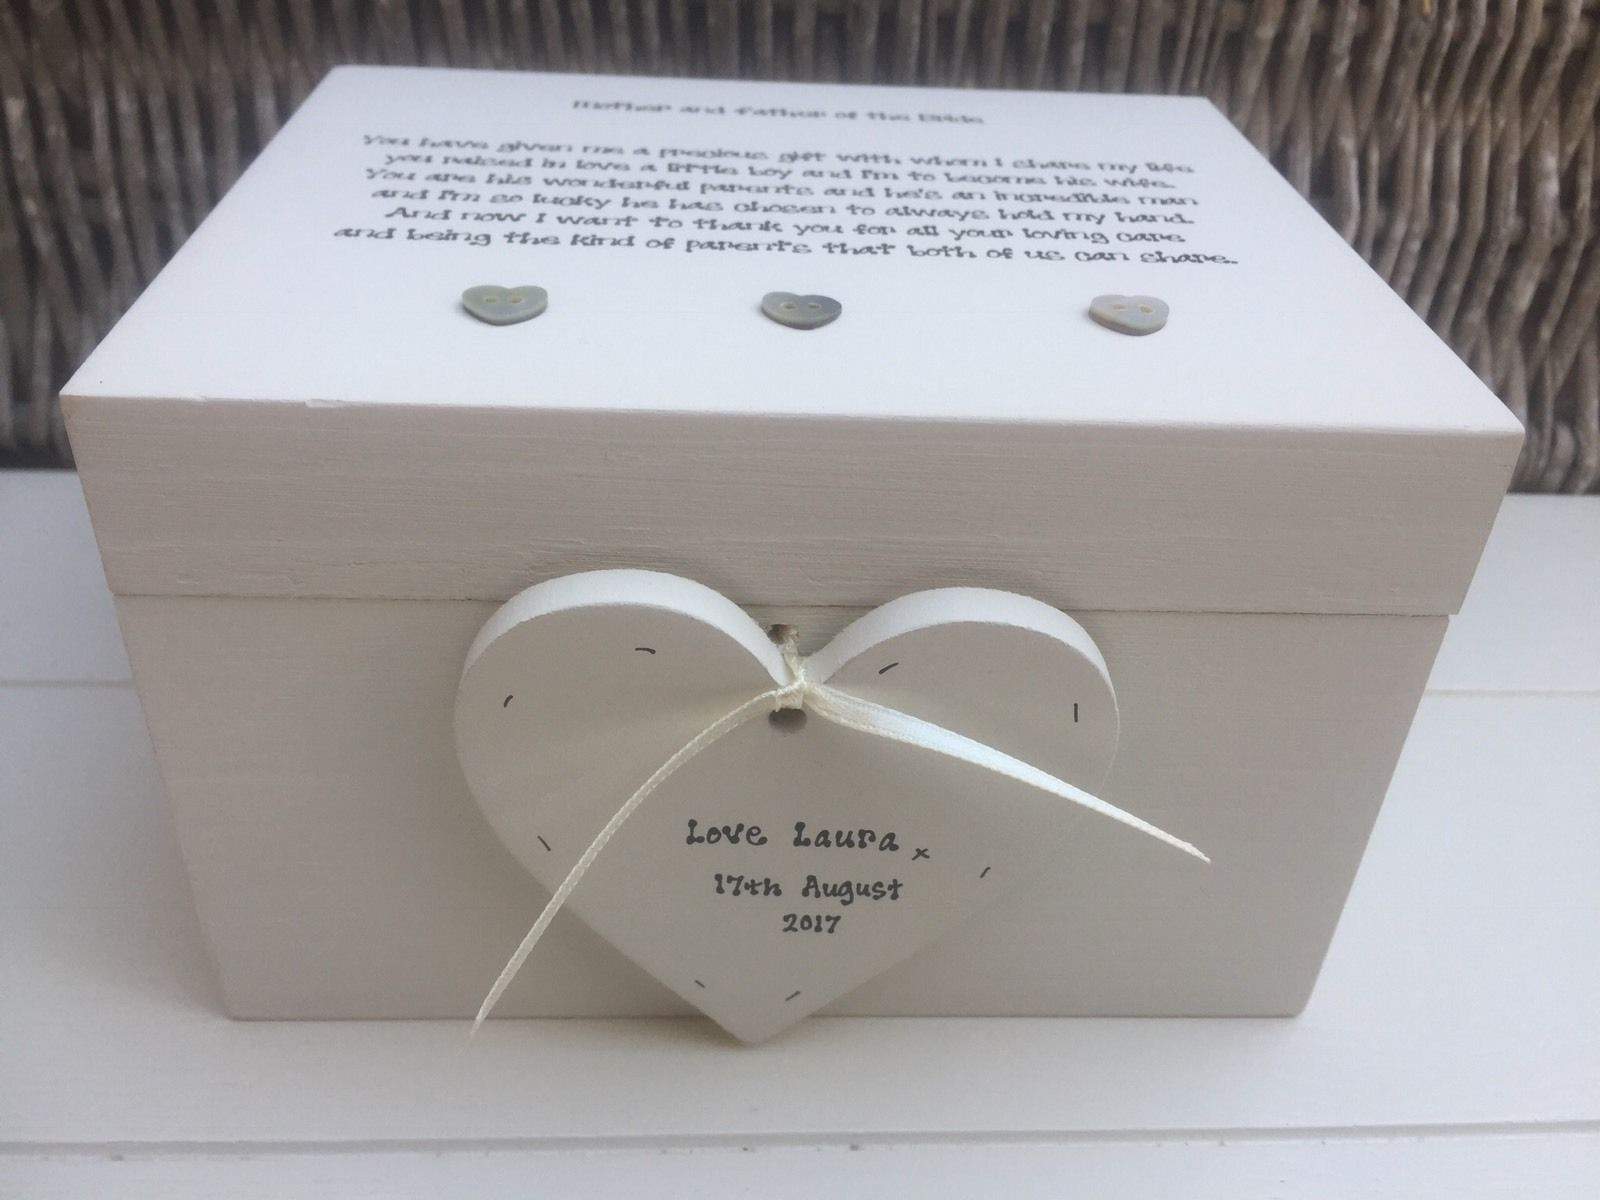 Wedding Keepsake Gifts Uk : ... Mother & Father Of The Bride Wedding Gift Keepsake Box - 232211398509